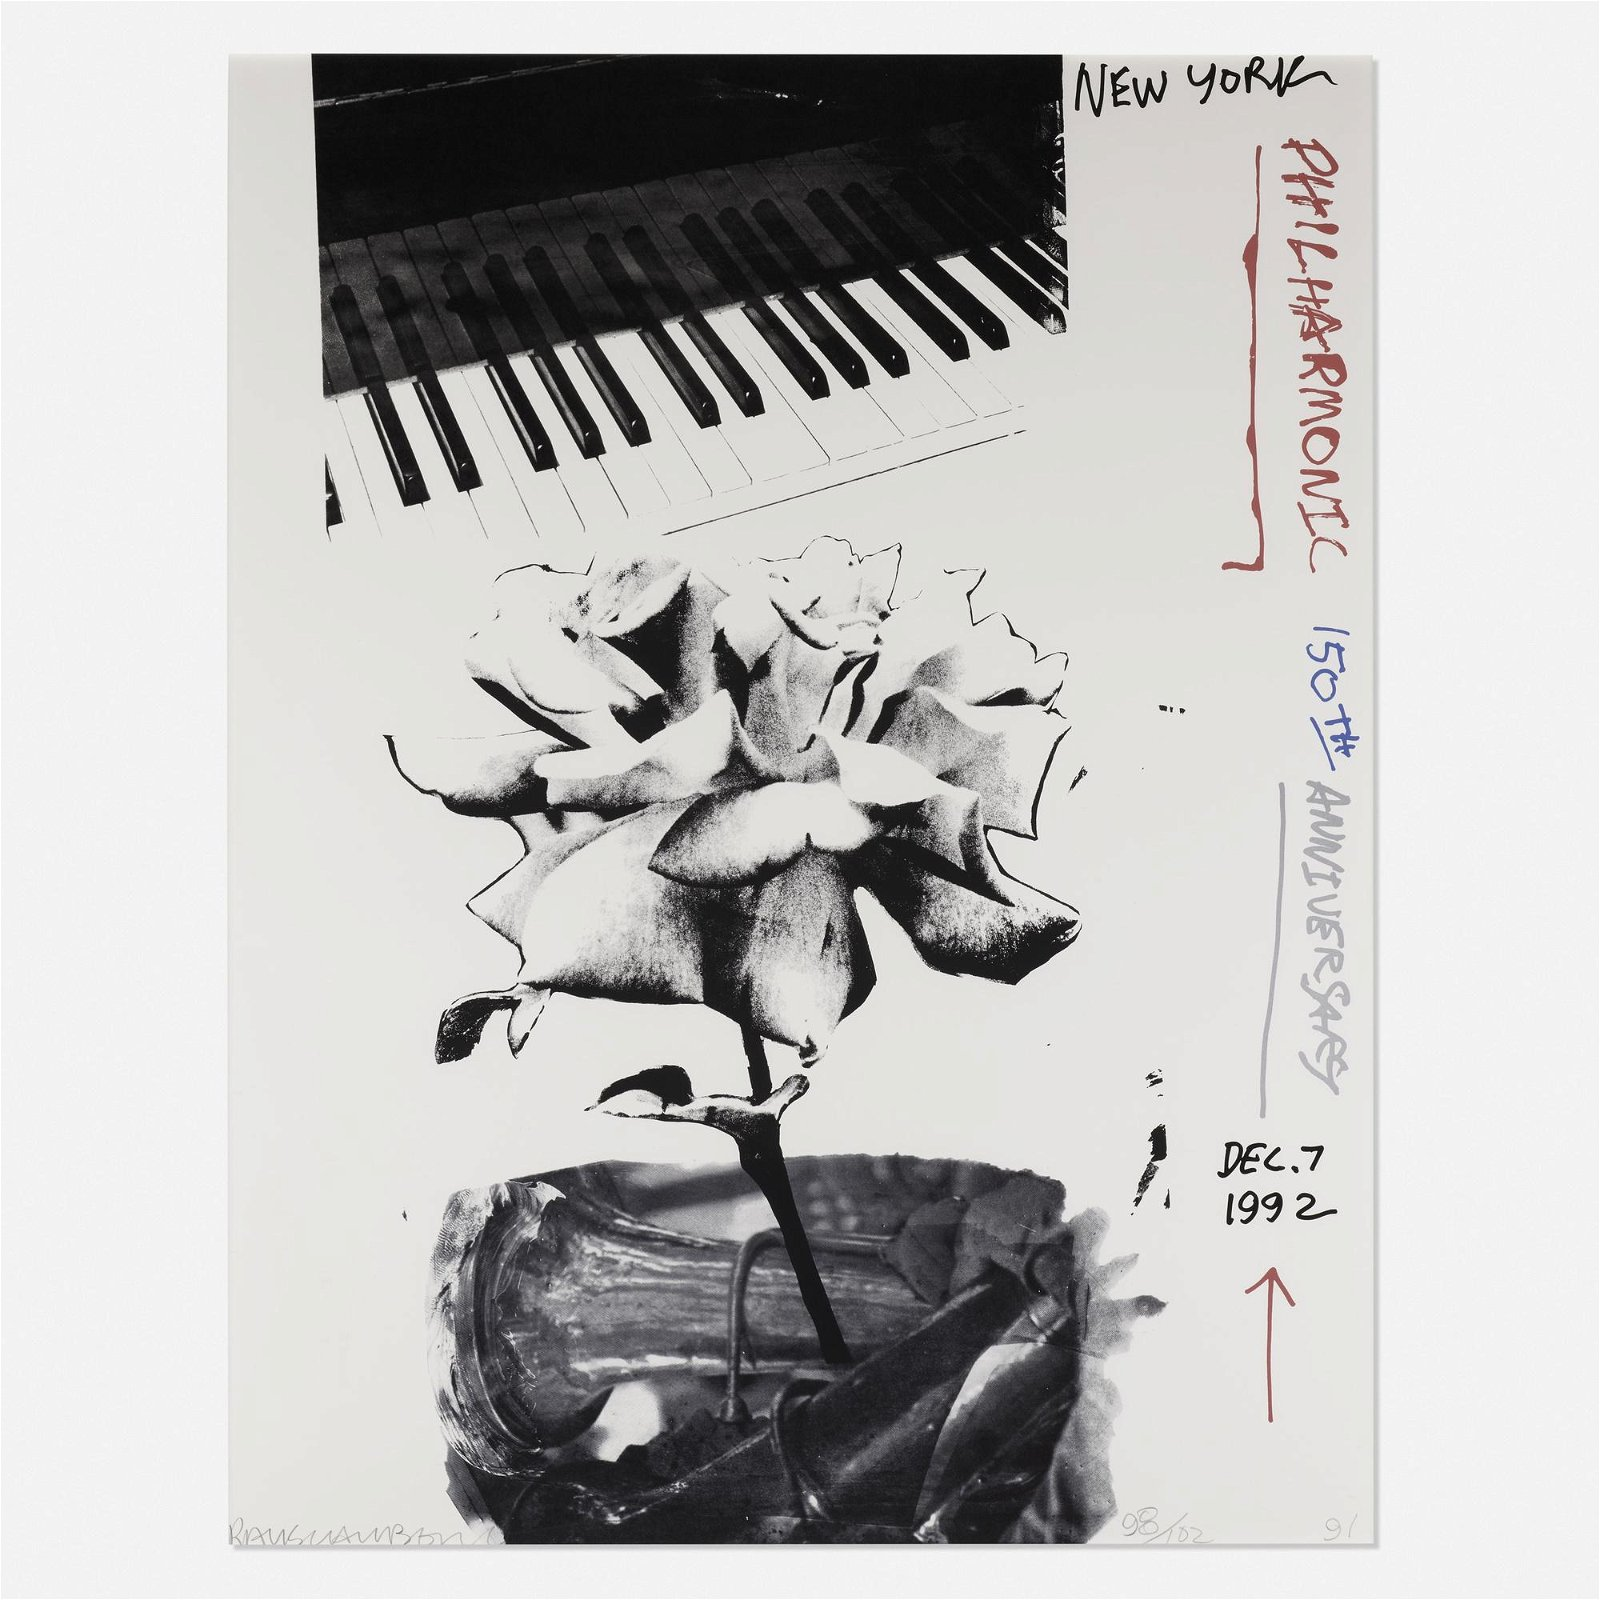 Robert Rauschenberg, New York Philharmonic poster